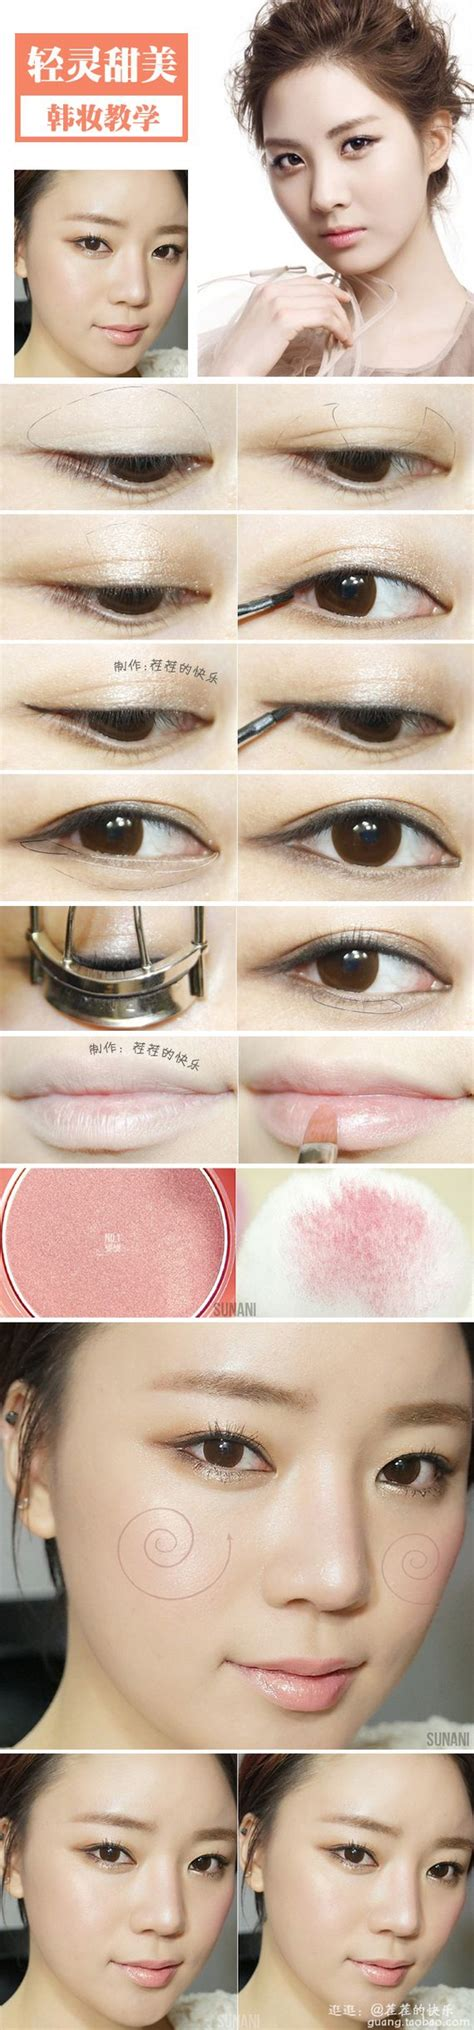 tutorial memakai lipstik korea tutorial memakai make up natural ala korea saubhaya makeup